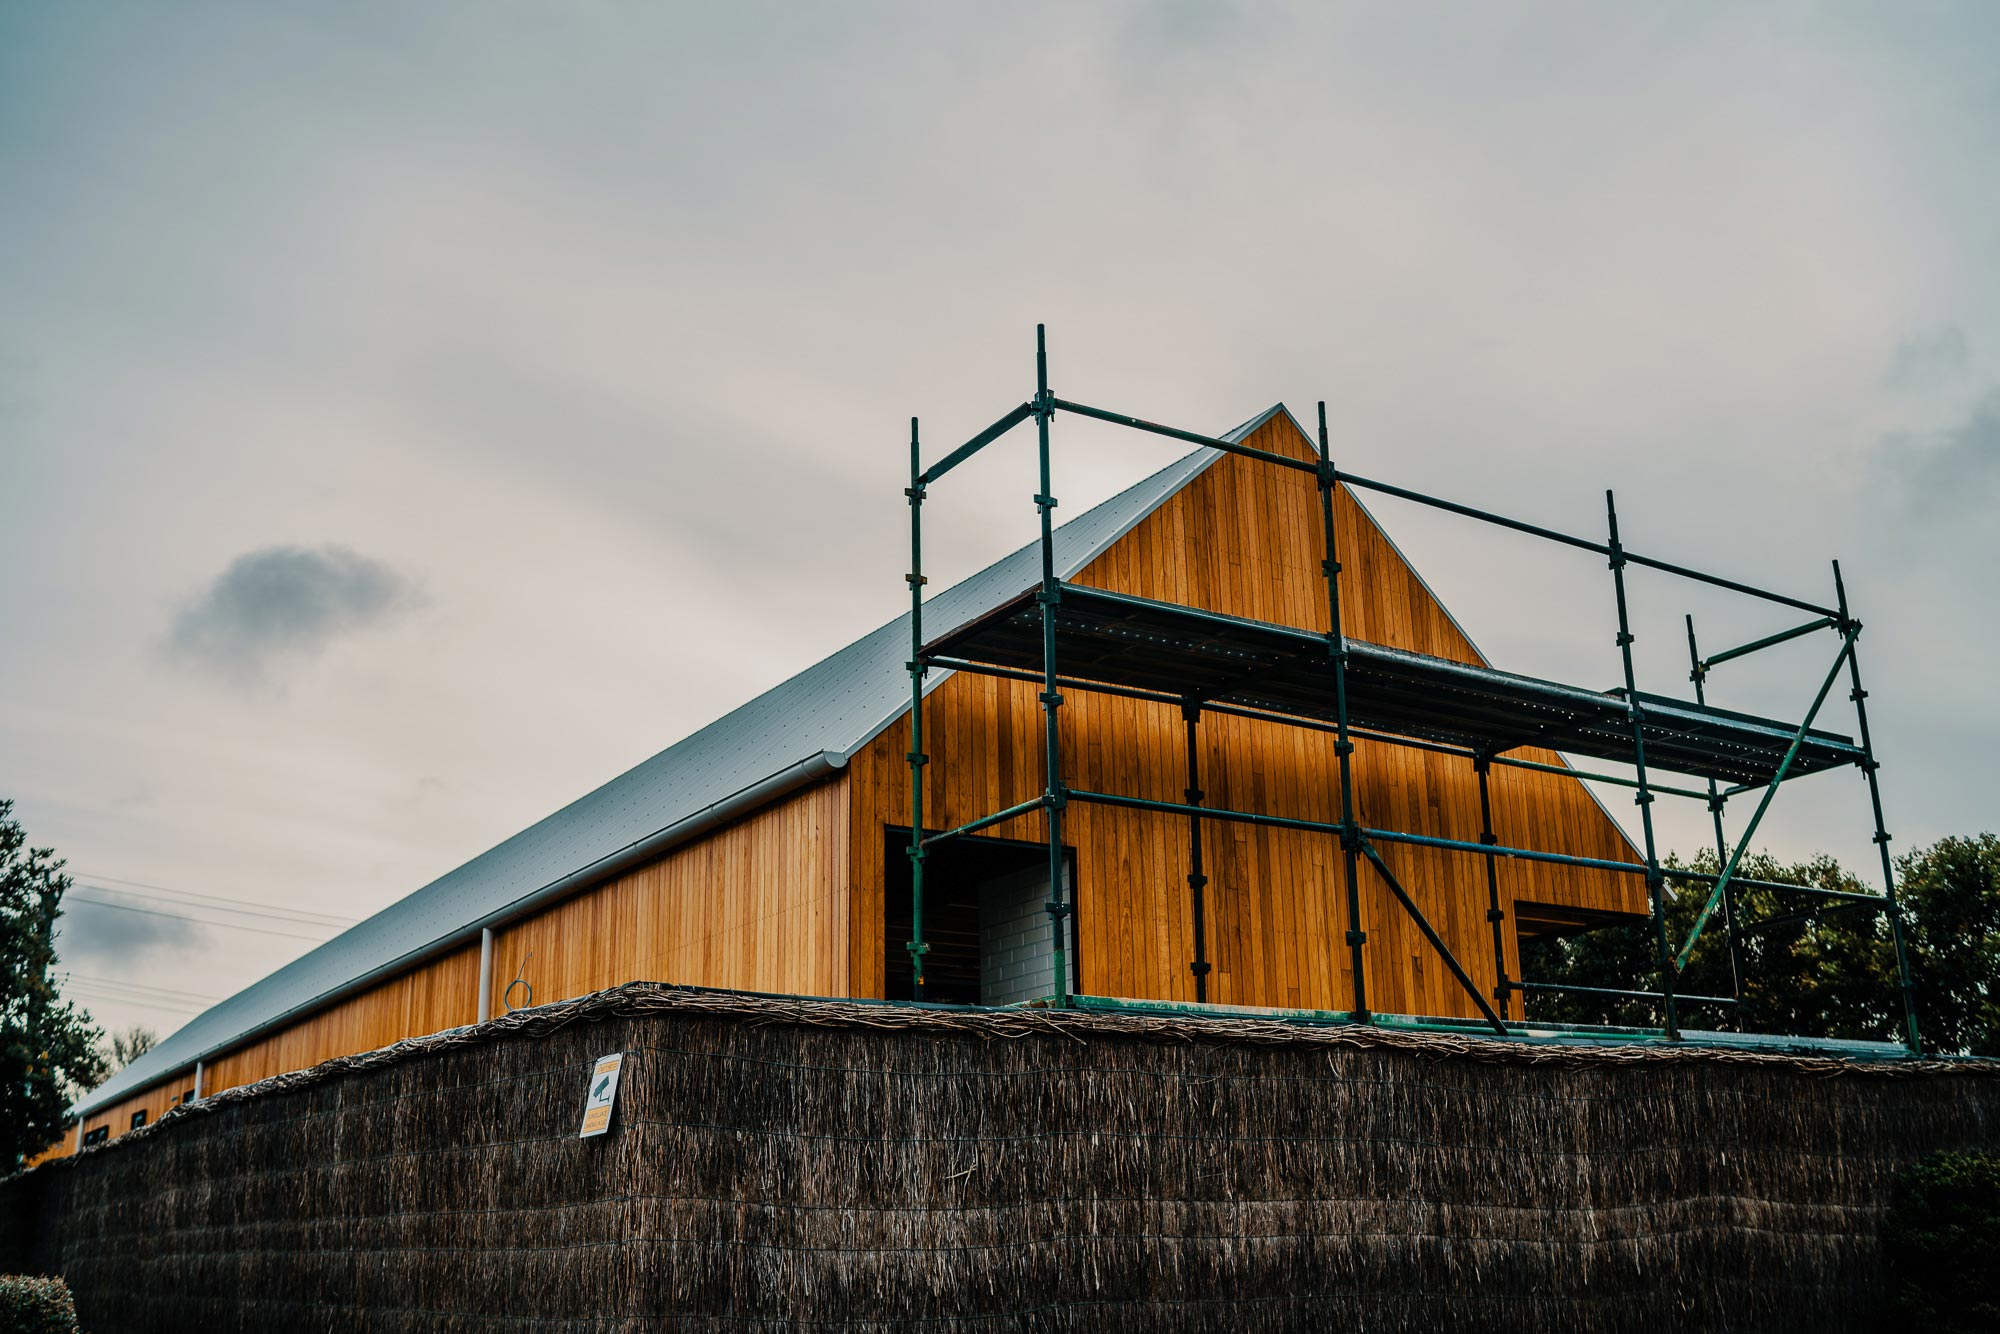 Granted Constructions - Melbourne - Building Process - Wooden Exterior - Peaked Roof